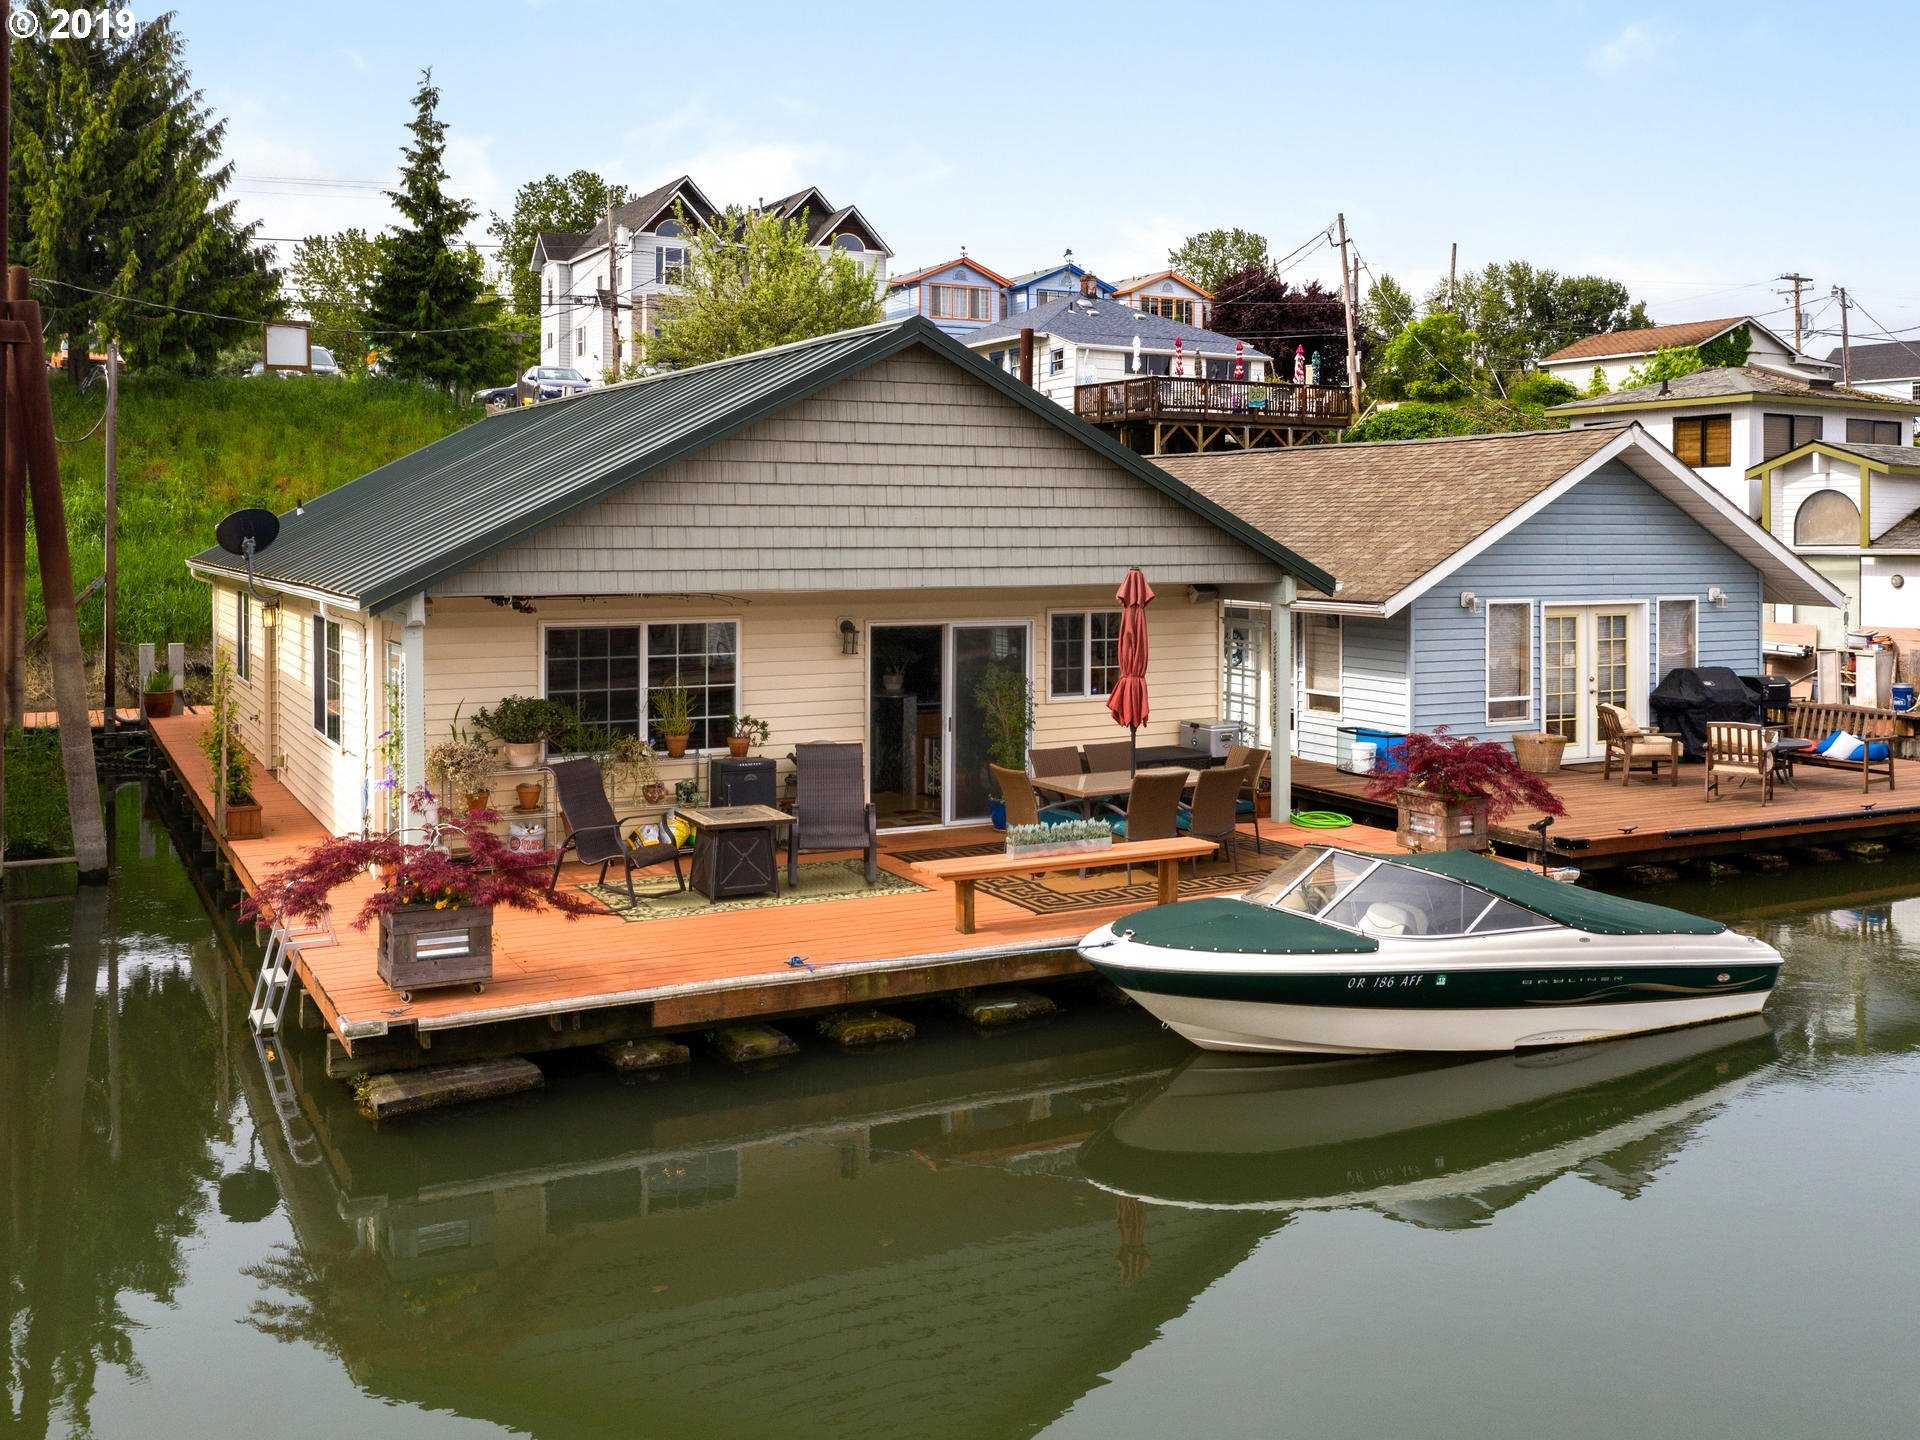 Floating Homes for Sale - You have come to the right place